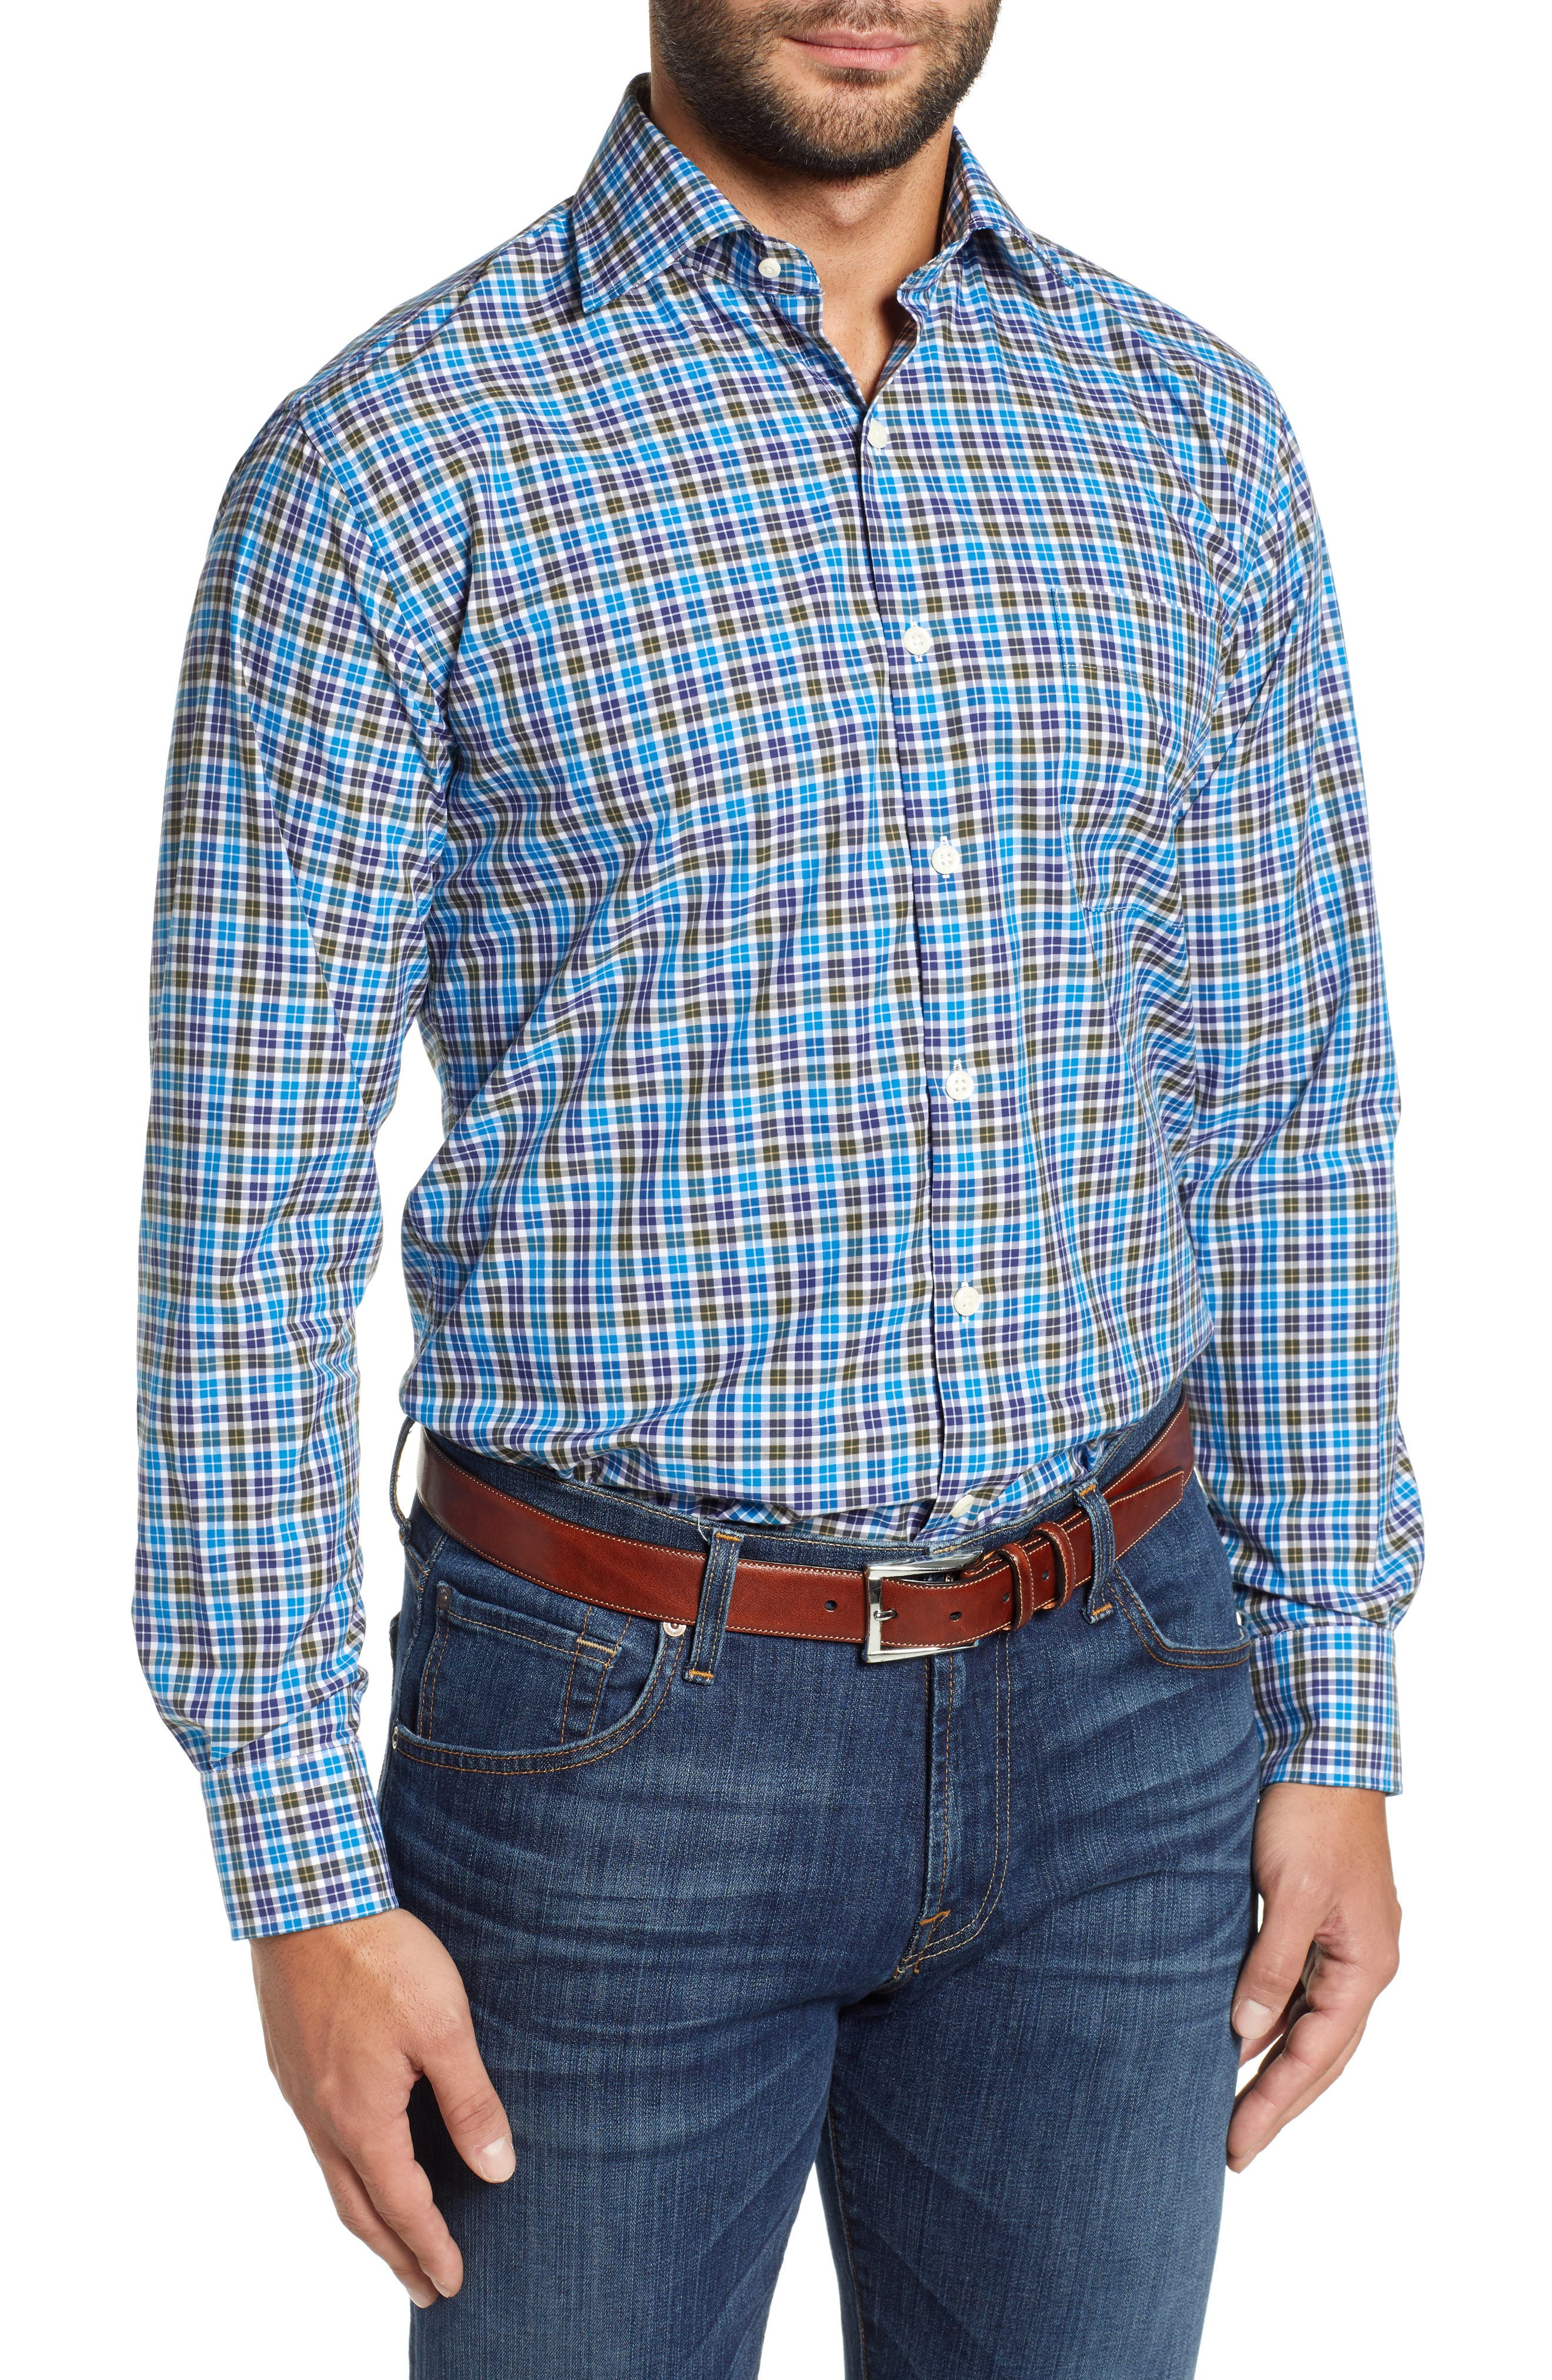 Crown Finish Salthill Check Regular Fit Sport Shirt,                             Main thumbnail 1, color,                             BLUE